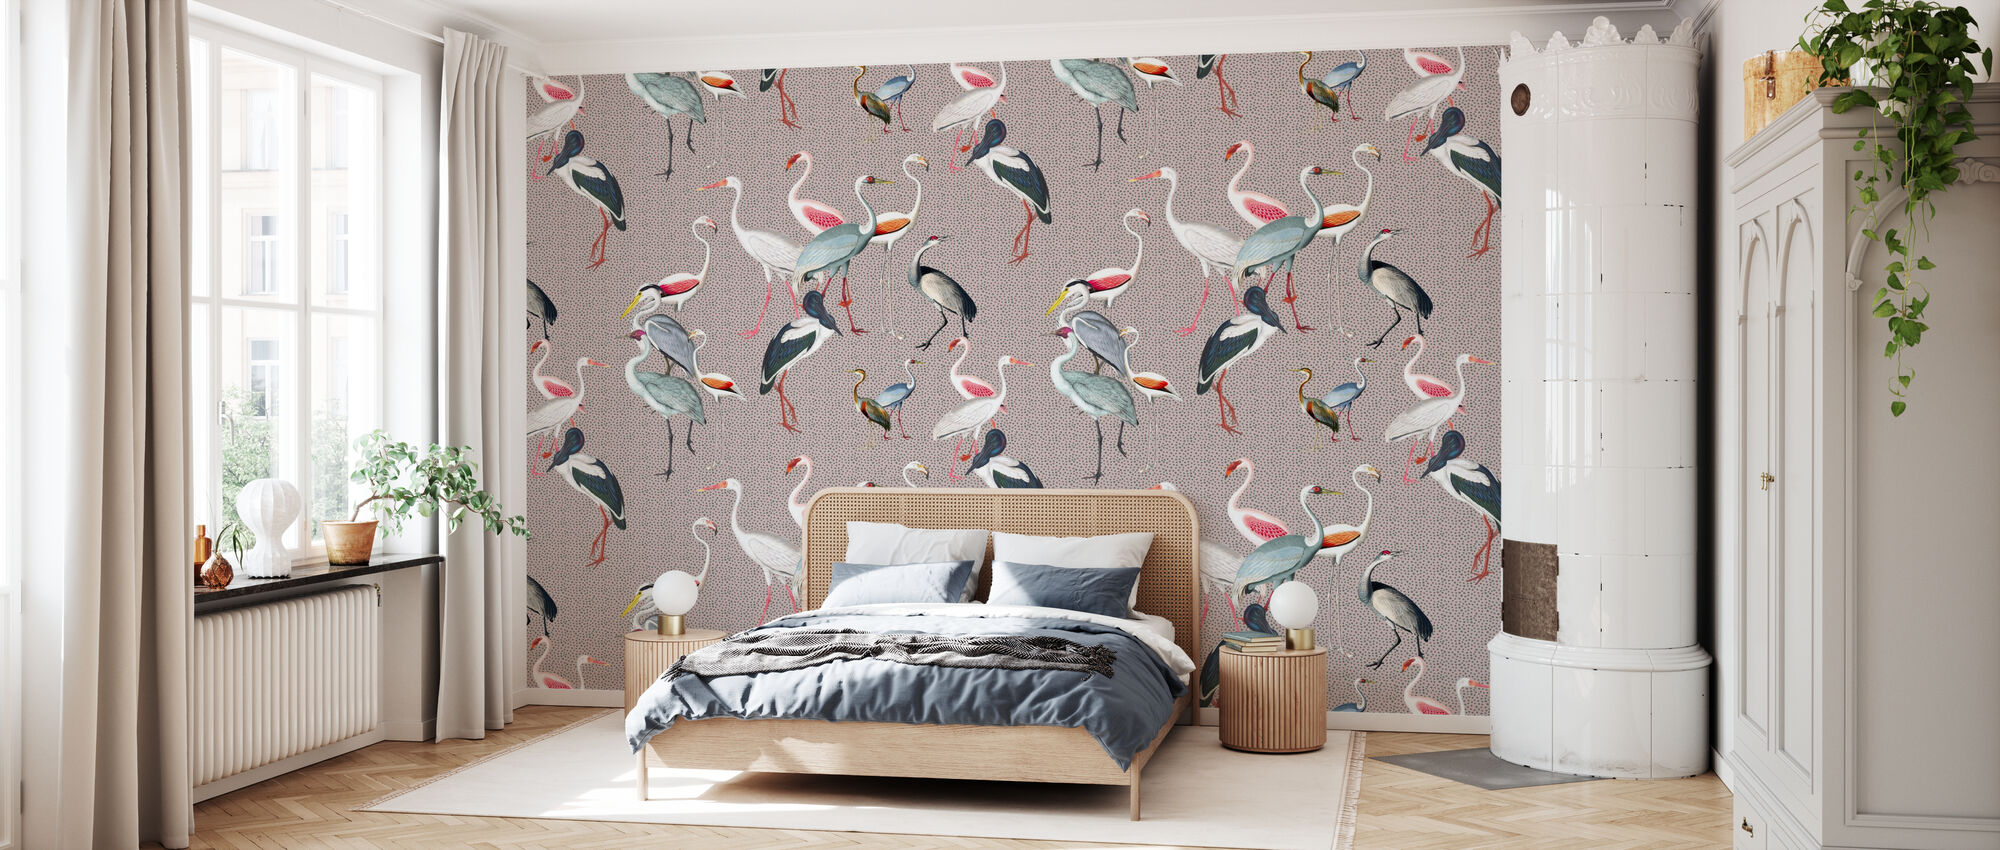 Long Necked Birds Harmony - Wallpaper - Bedroom